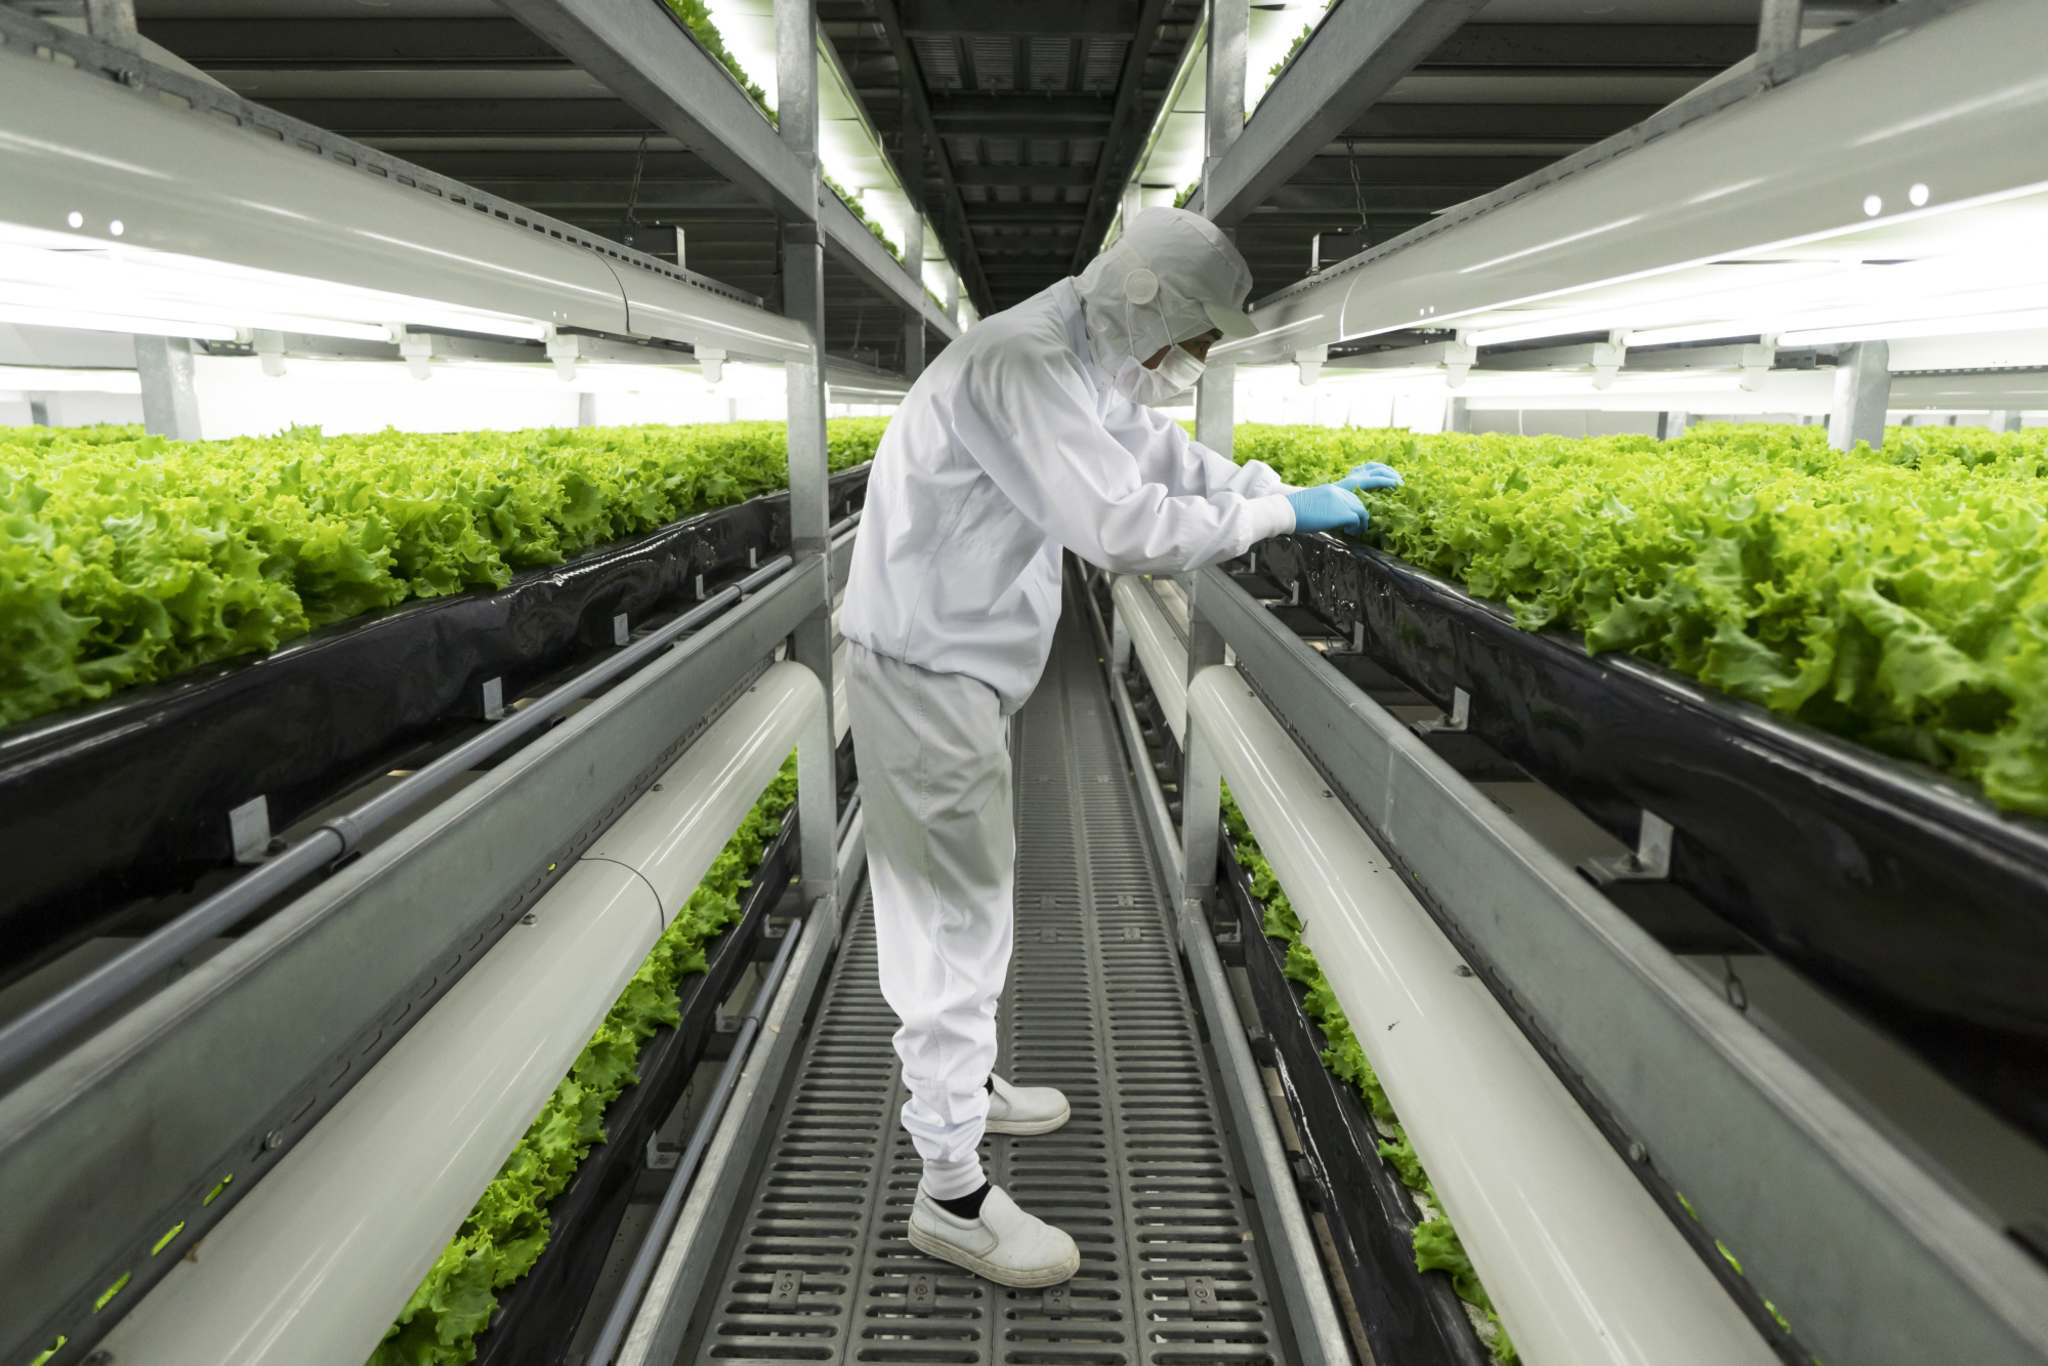 Tomohiro Ohsumi / Bloomberg</p><p>Spread Co.&rsquo;s facility in Kameoka, Japan, produces about 300 heads of lettuce per square metre annually. The company&rsquo;s new factory is expected to double that output.</p></p>